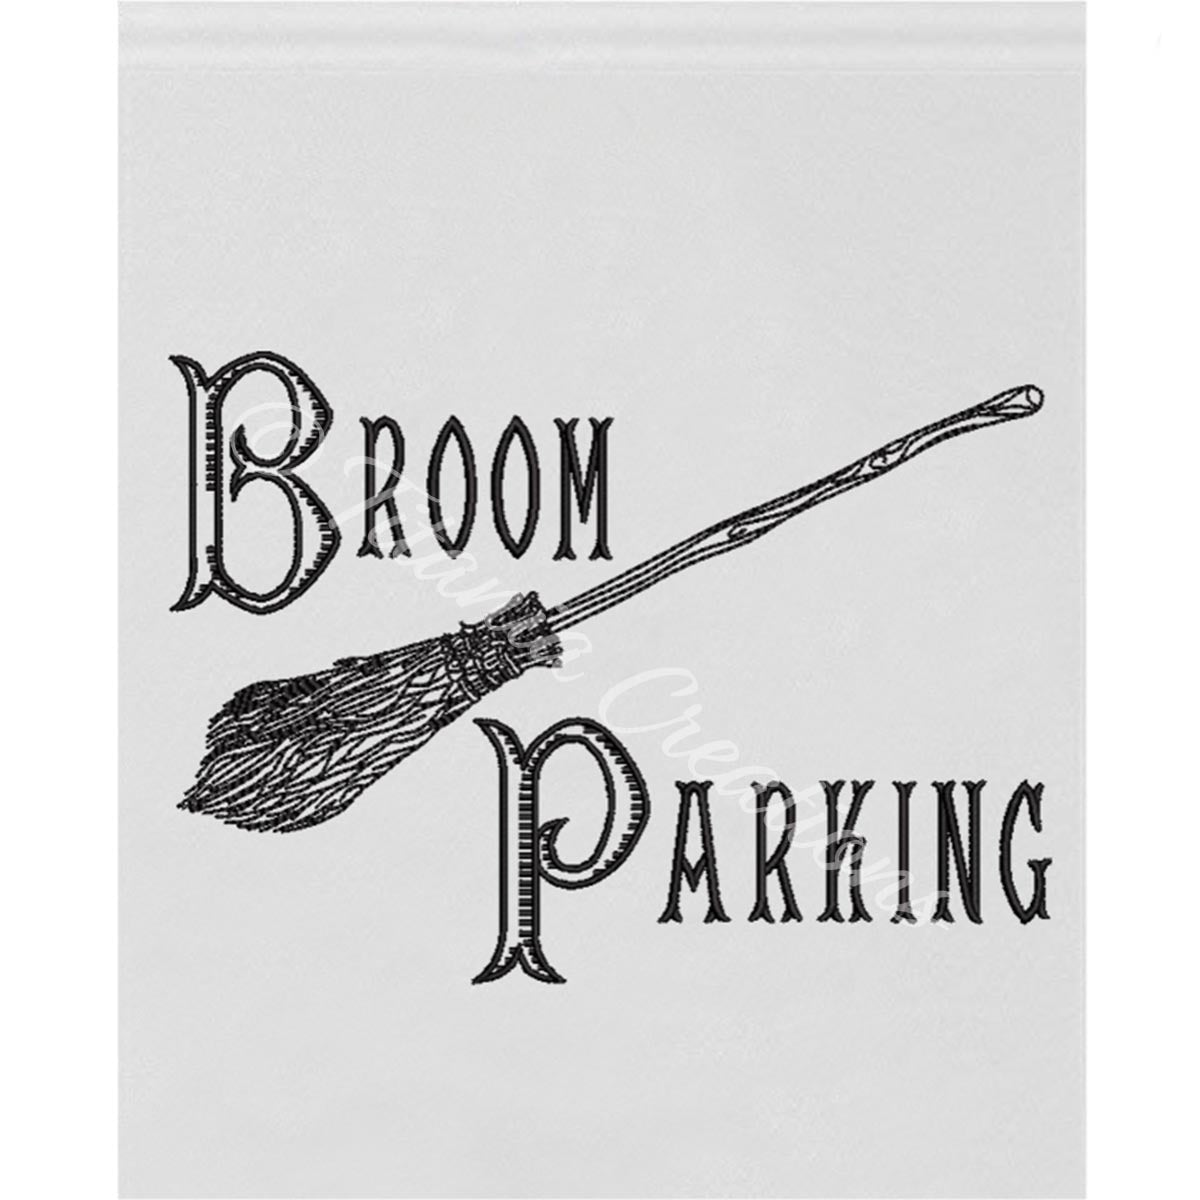 Broom Parking 5x7 6x10 8x12